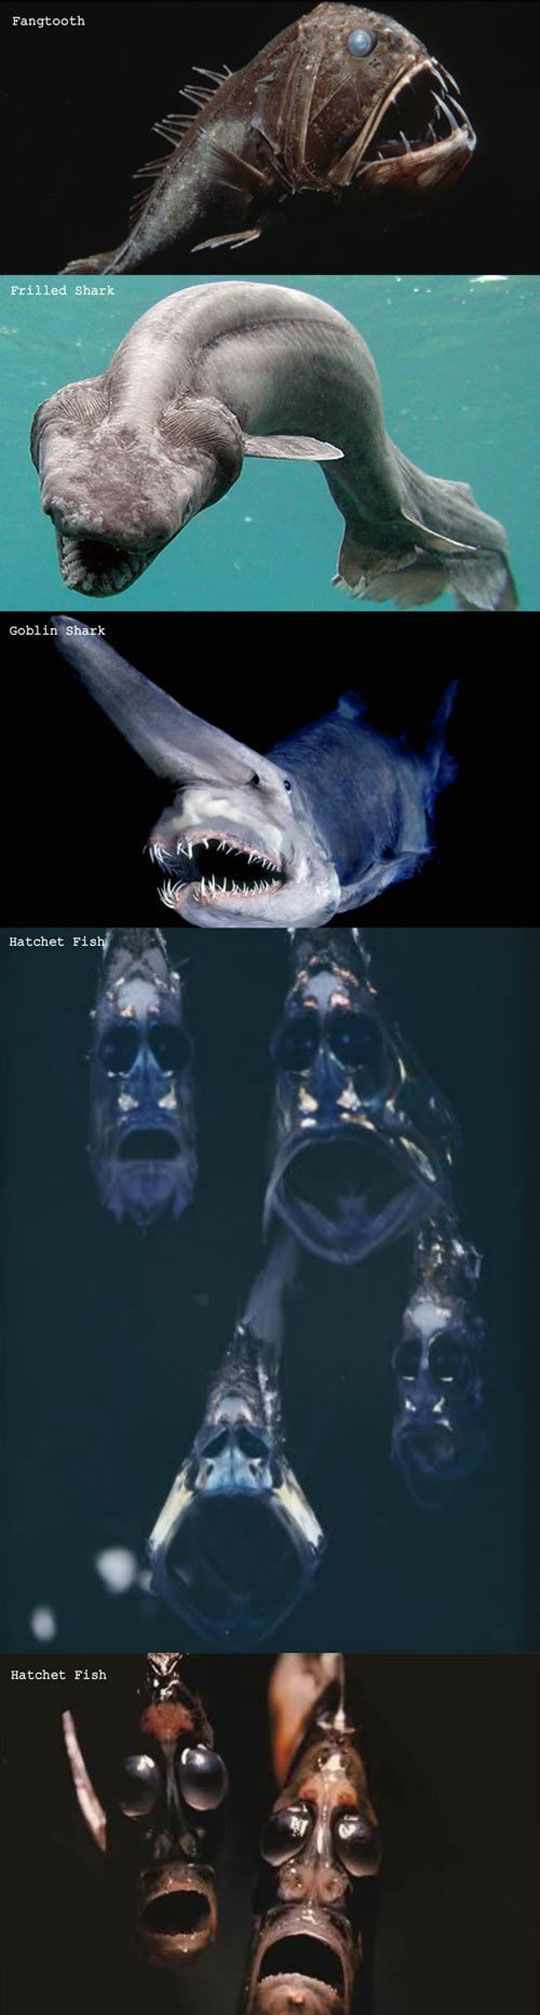 That Is Some Scary Stuff~~~I'm sure these guys are deep enough I would never see them but I'll never know cause I'll never go in the ocean again!!!!!  Been in 2 of them and that's enough!